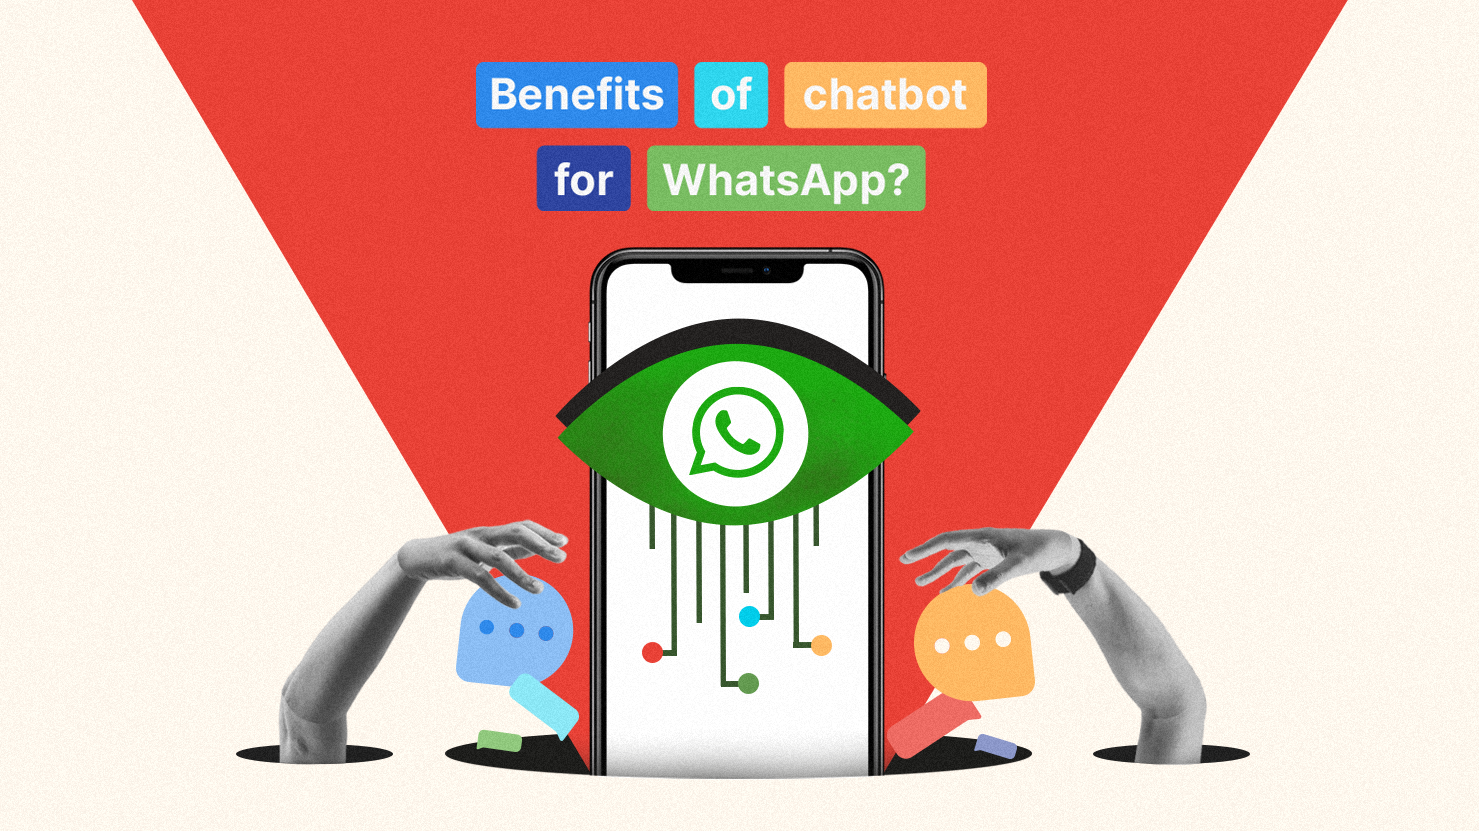 Why should businesses want to implement chatbot for their WhatsApp account? We will discuss what exactly are the benefits of chatbot for WhatsApp (Illustration by Kata.ai)